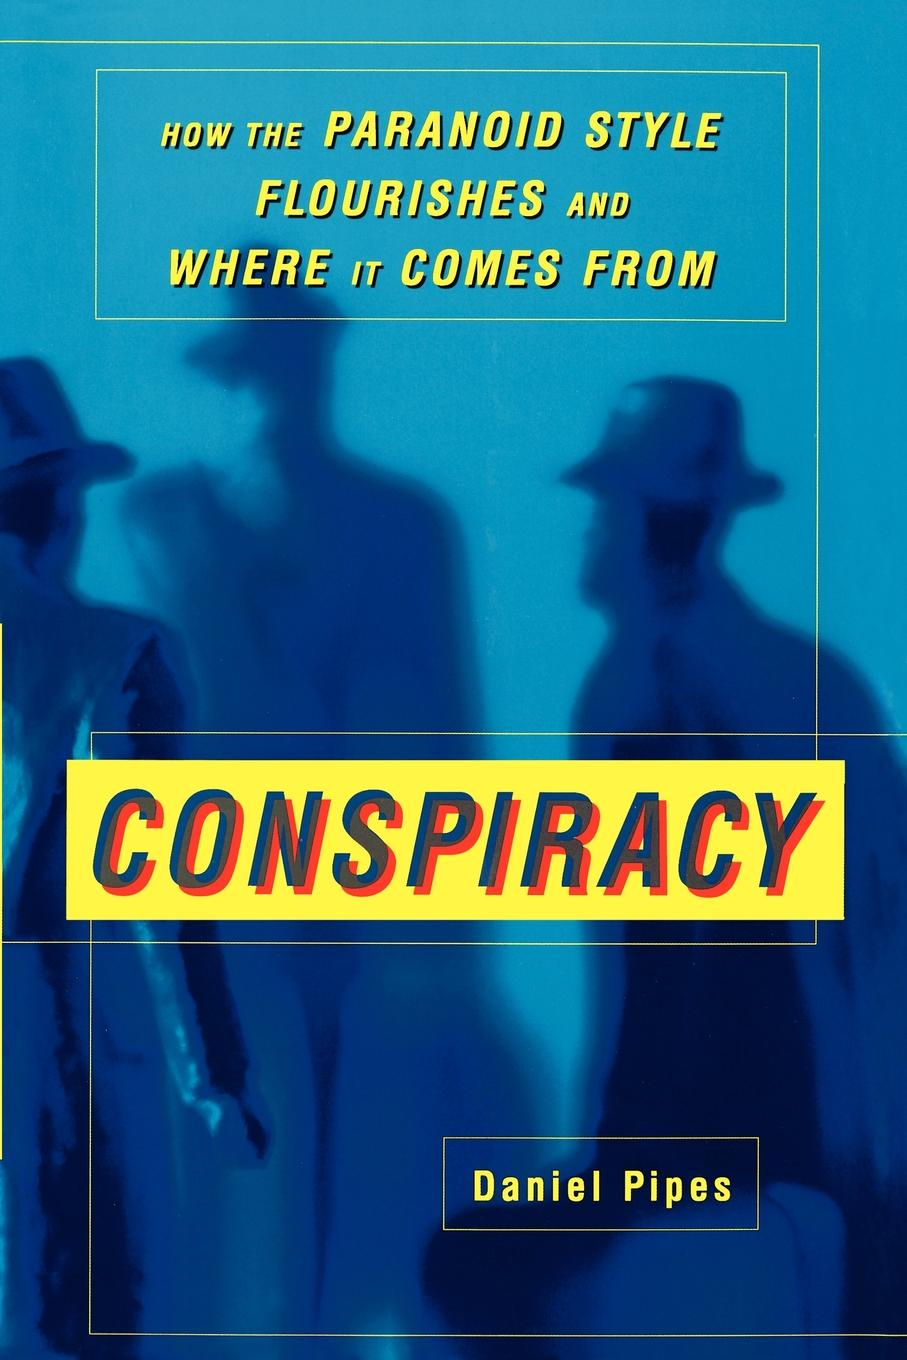 Conspiracy. How the Paranoid Style Flourishes and Where It Comes from